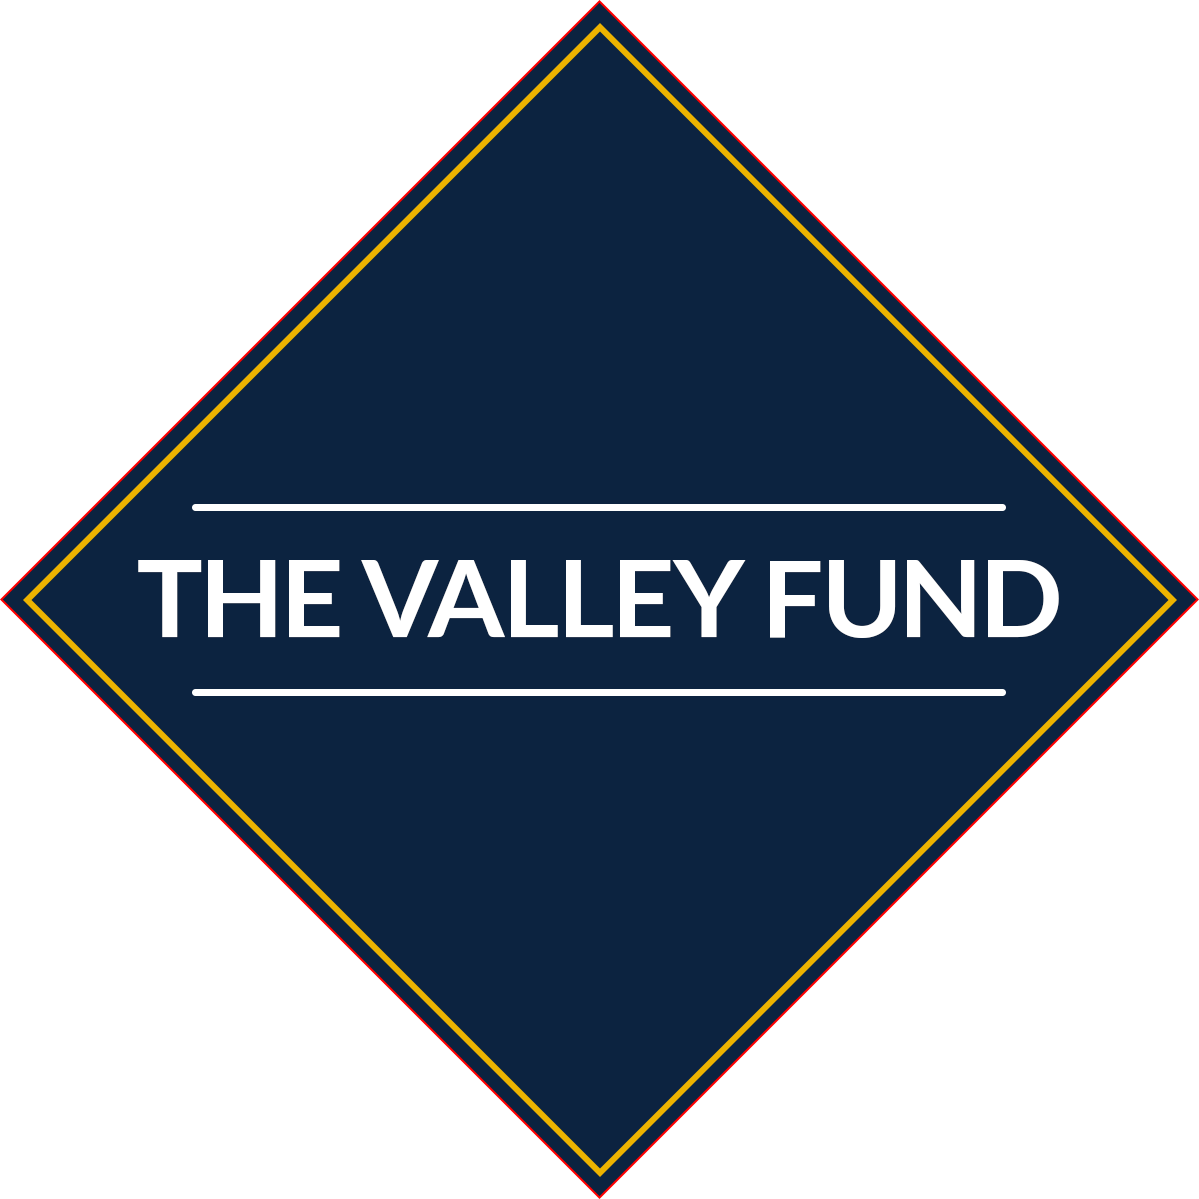 The Valley Fund